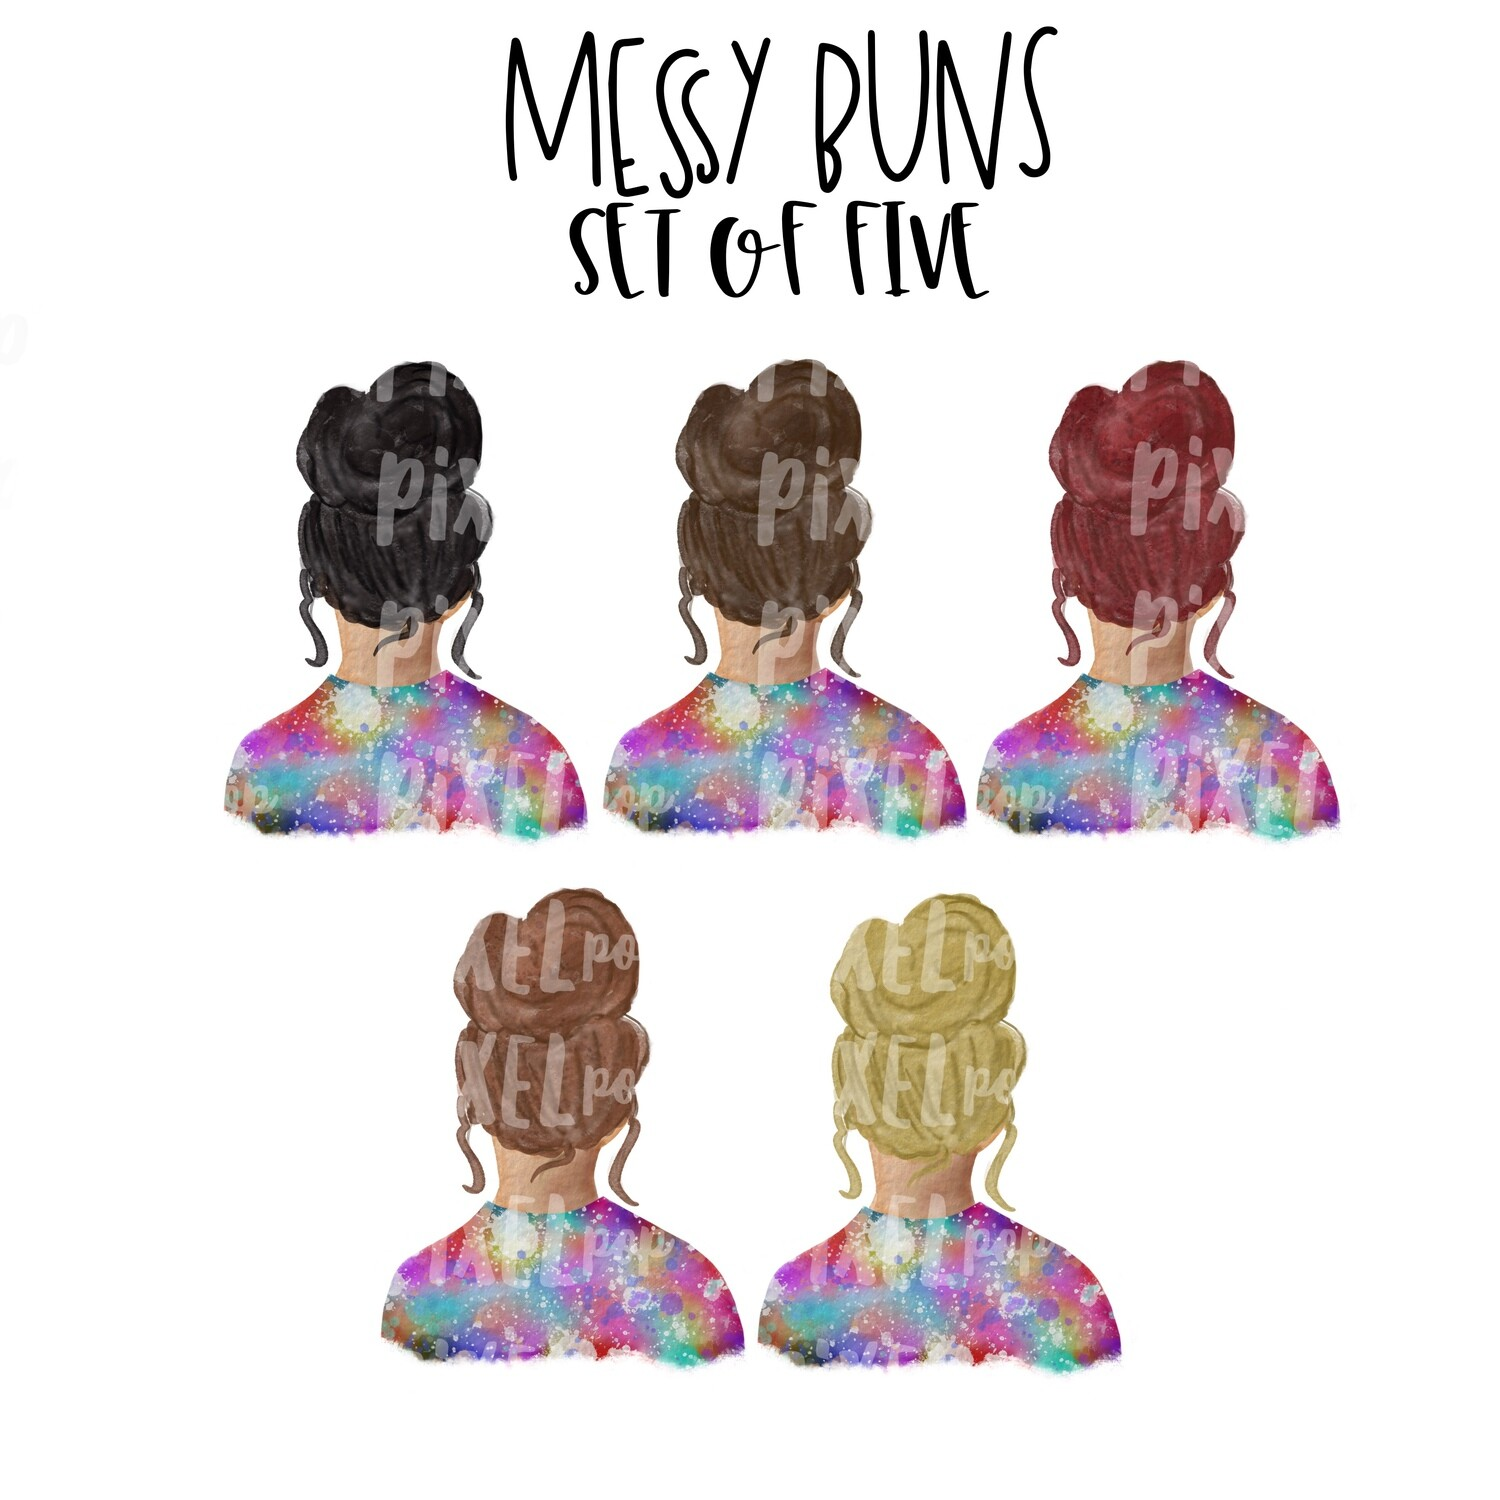 Messy Buns Girls Set | Tie Dye Shirt Sublimation PNG | Sublimation Design | Hippie Girl | Digital Download | Printable Art